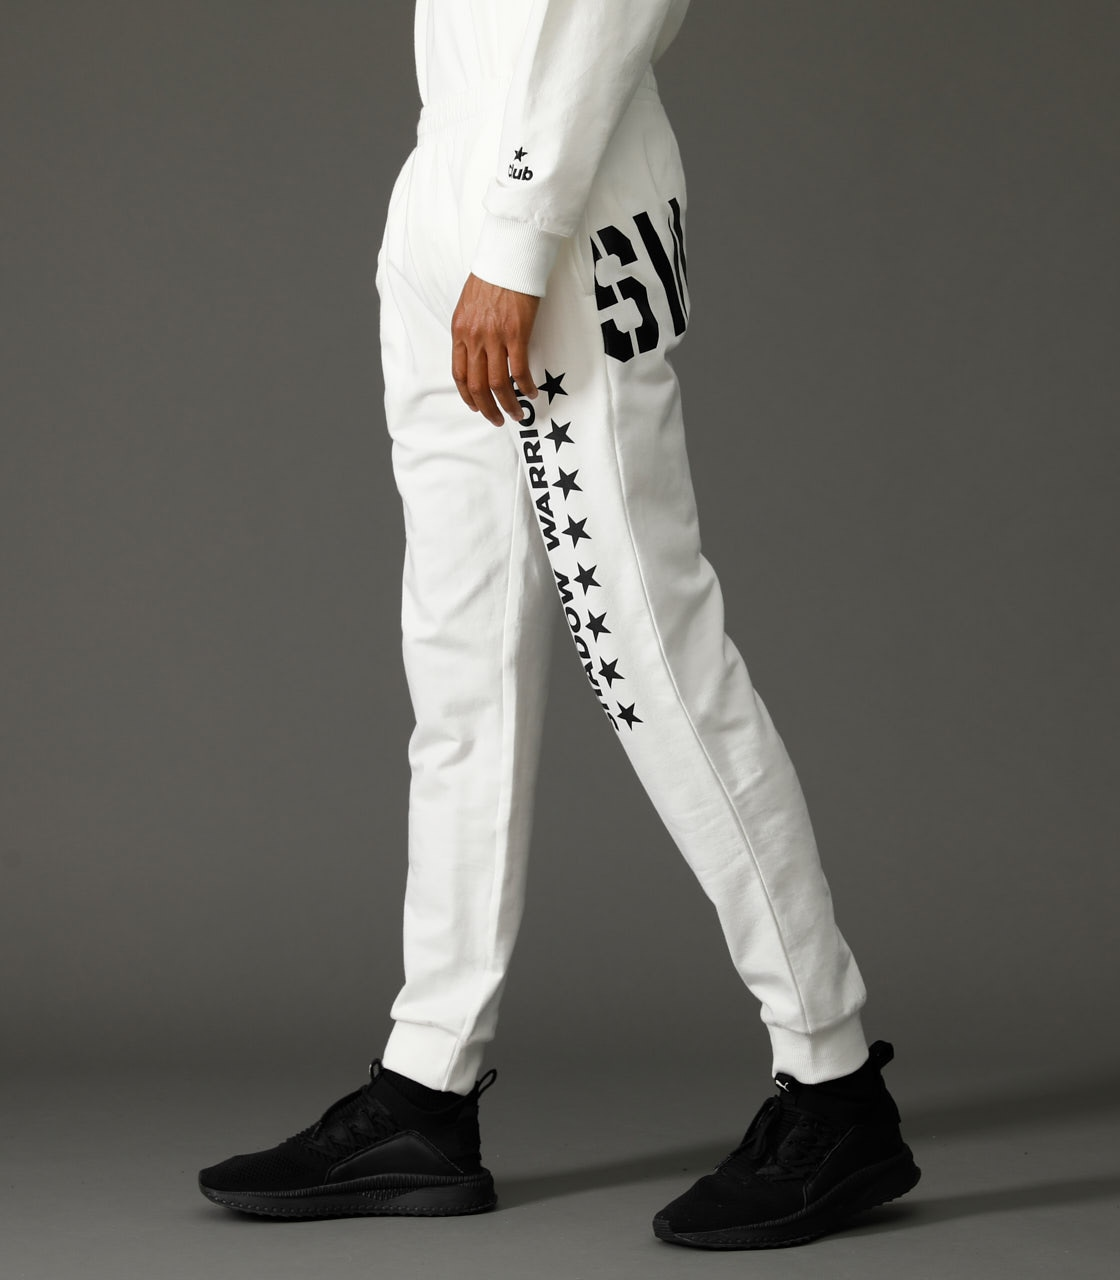 CLUB AZUL STRETCH PANTS 詳細画像 WHT 2